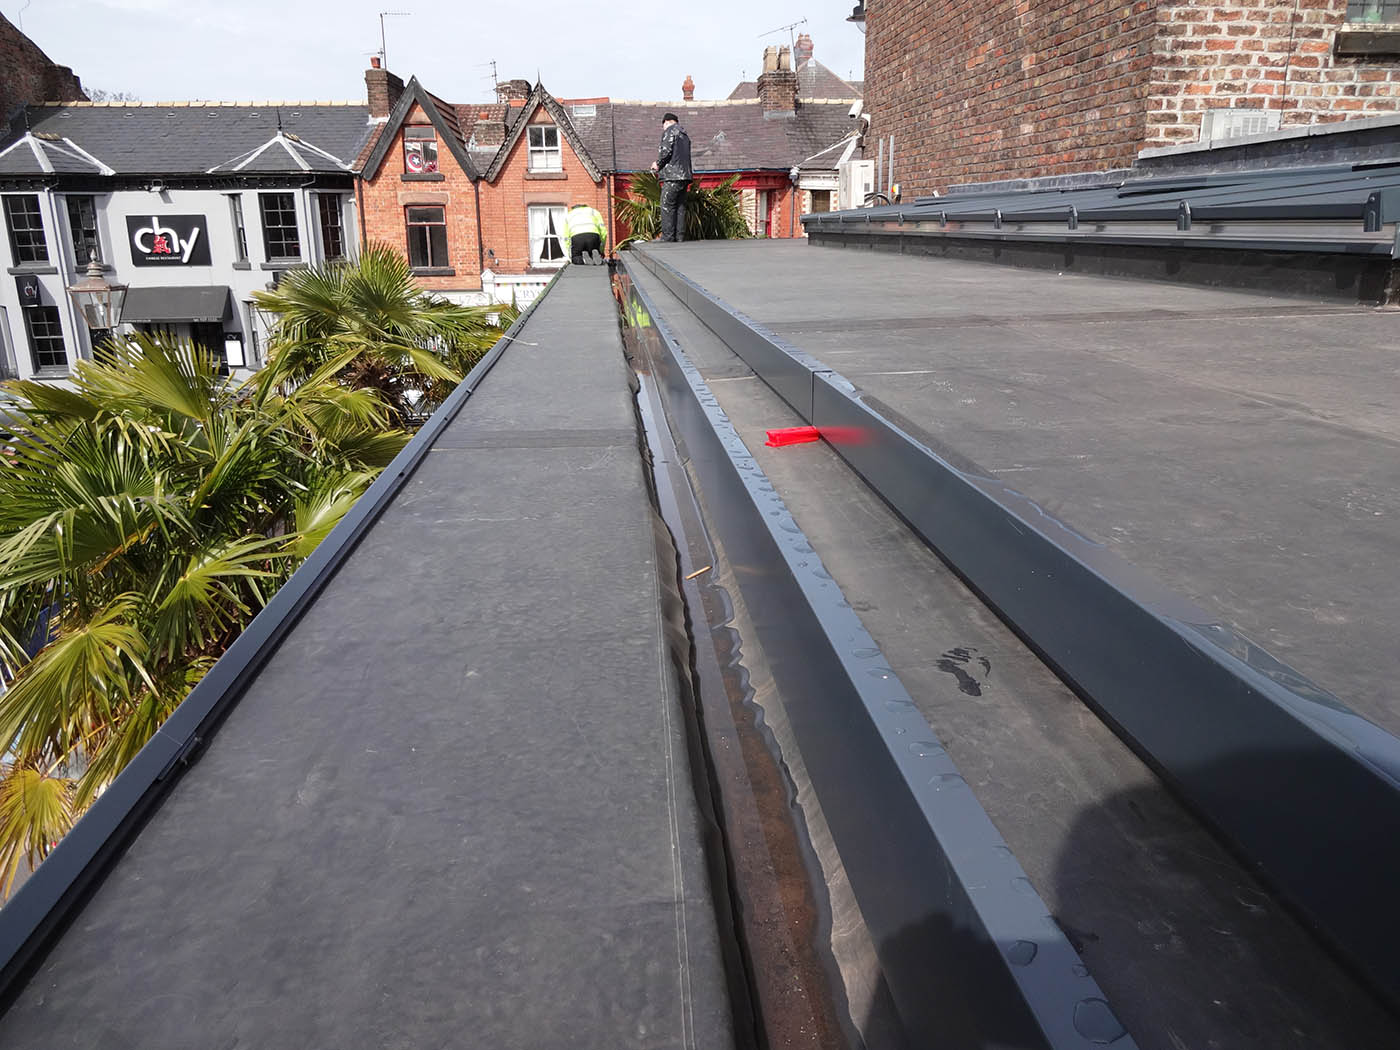 Flat Roofs Liverpool Vision Home Improvements